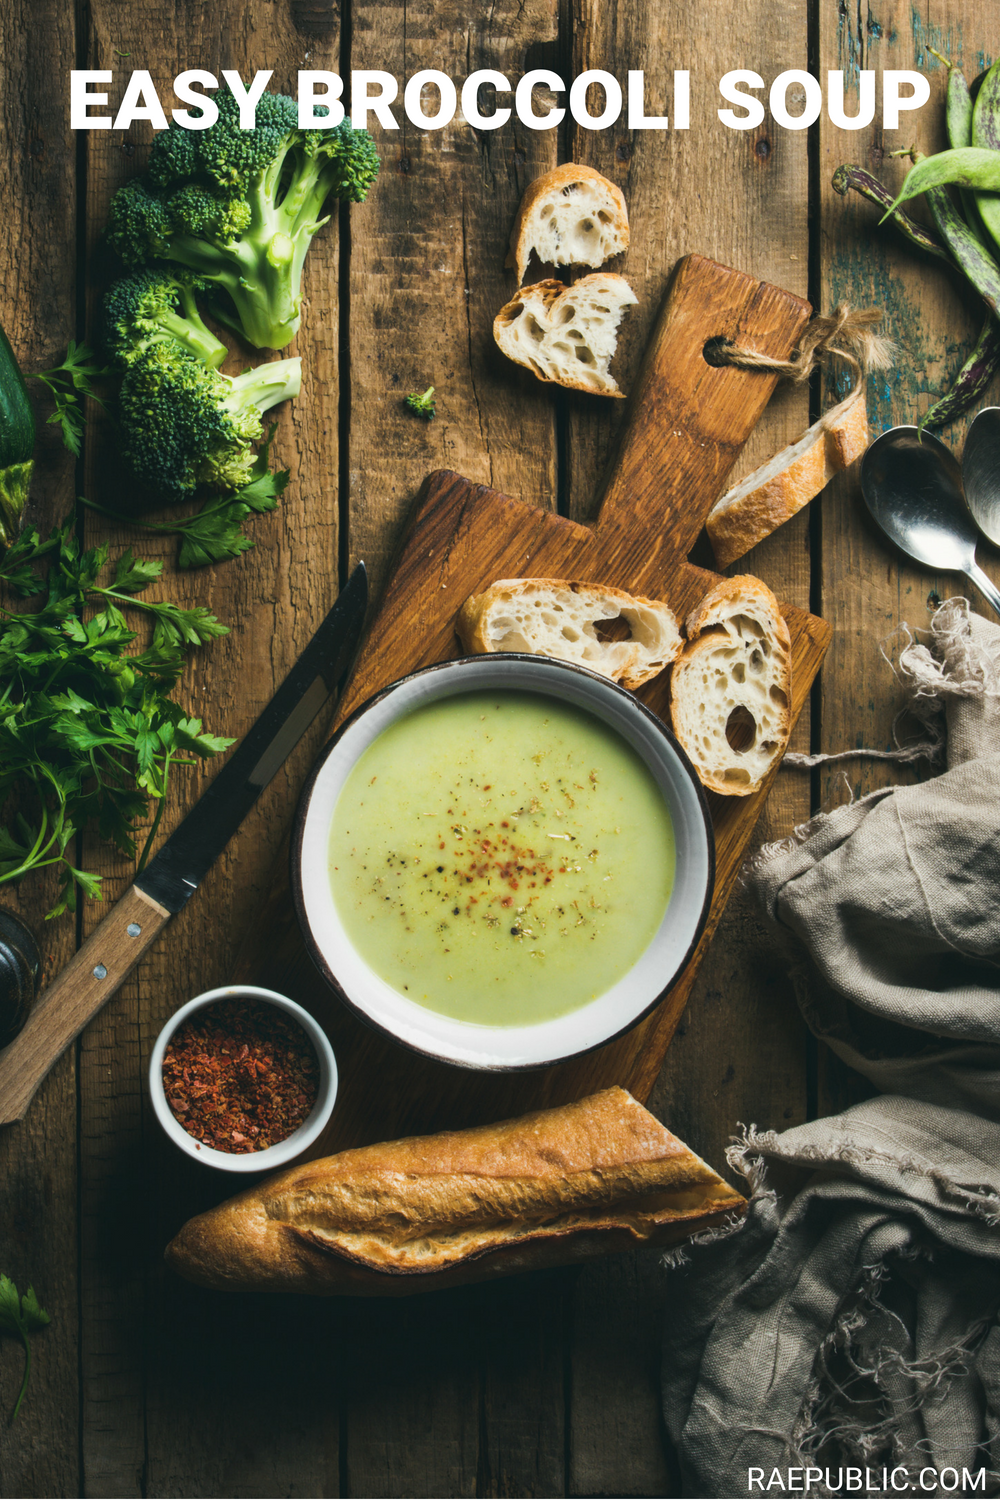 Easy and fresh, vegan broccoli soup. Made with plant-based whole foods this vegan recipe is delicious as can be.